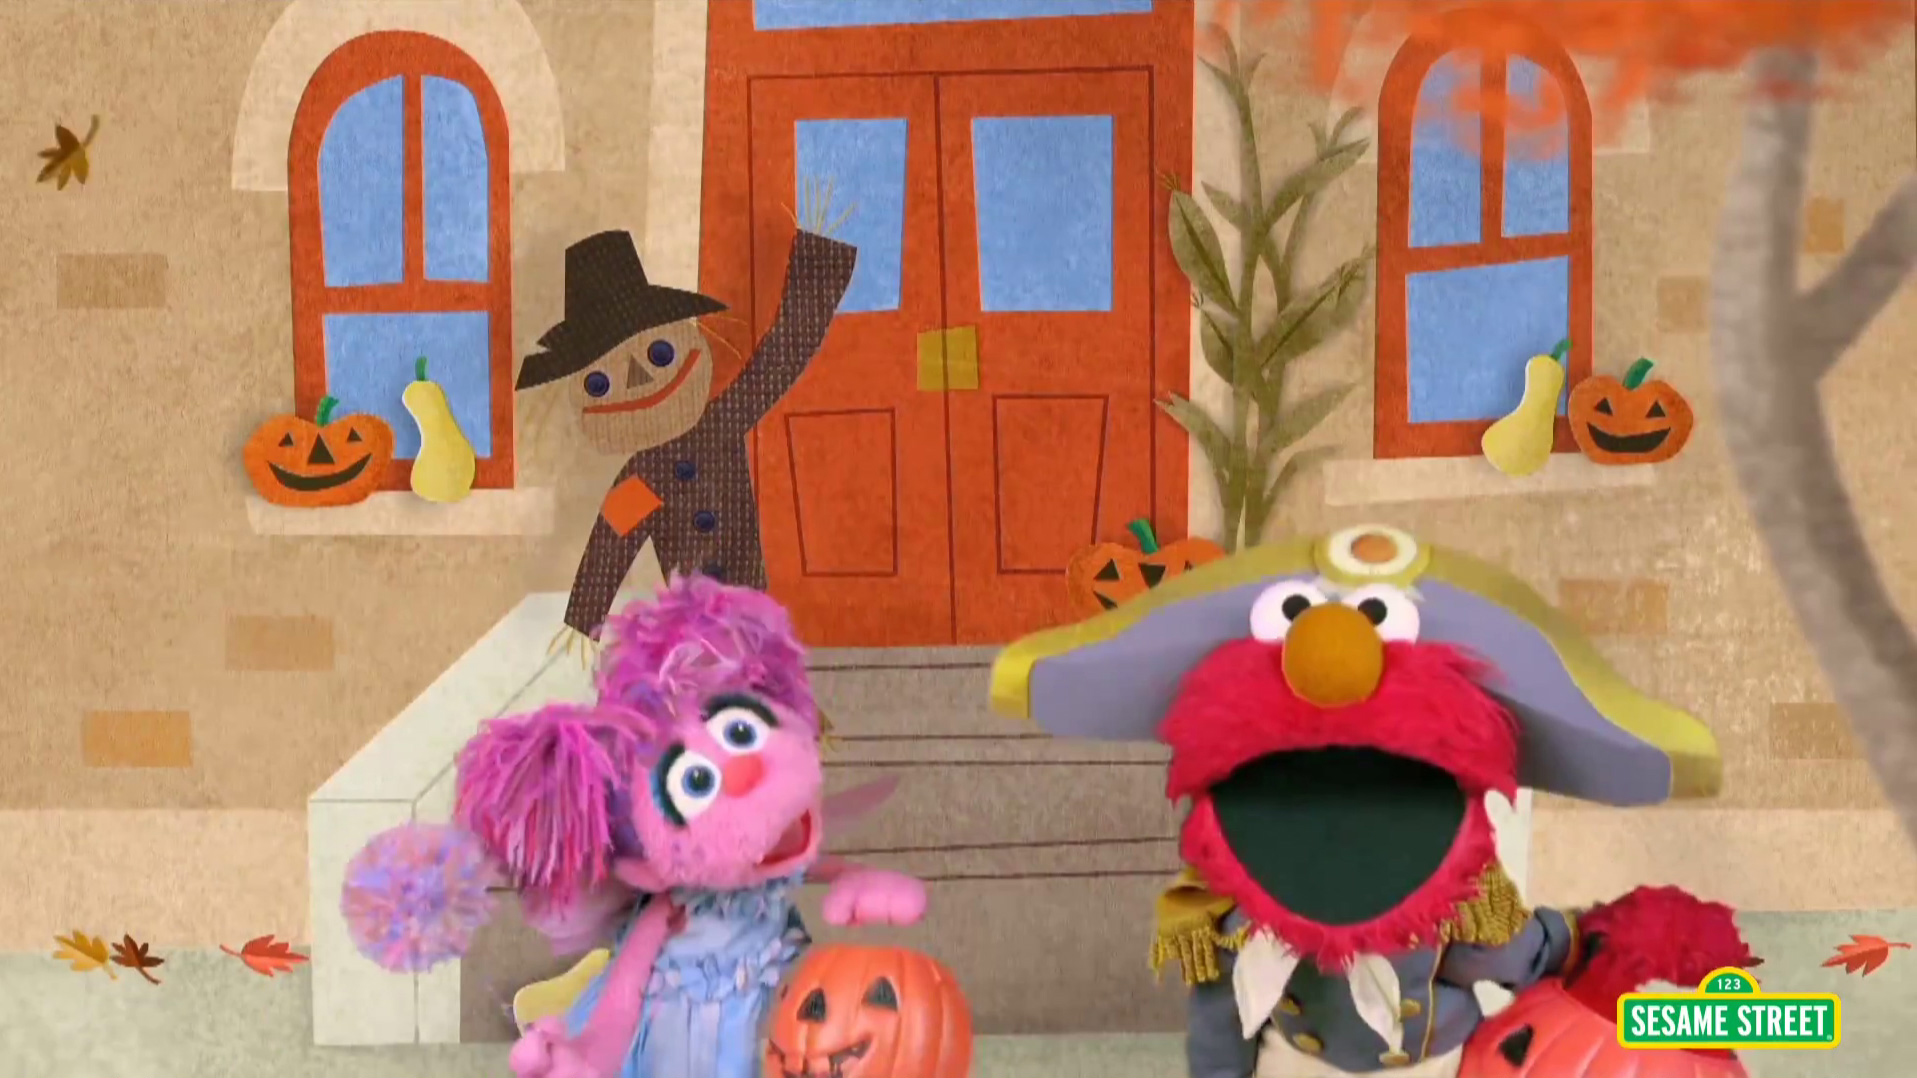 The Top 10 Songs of: Halloween! | The Muppet Mindset